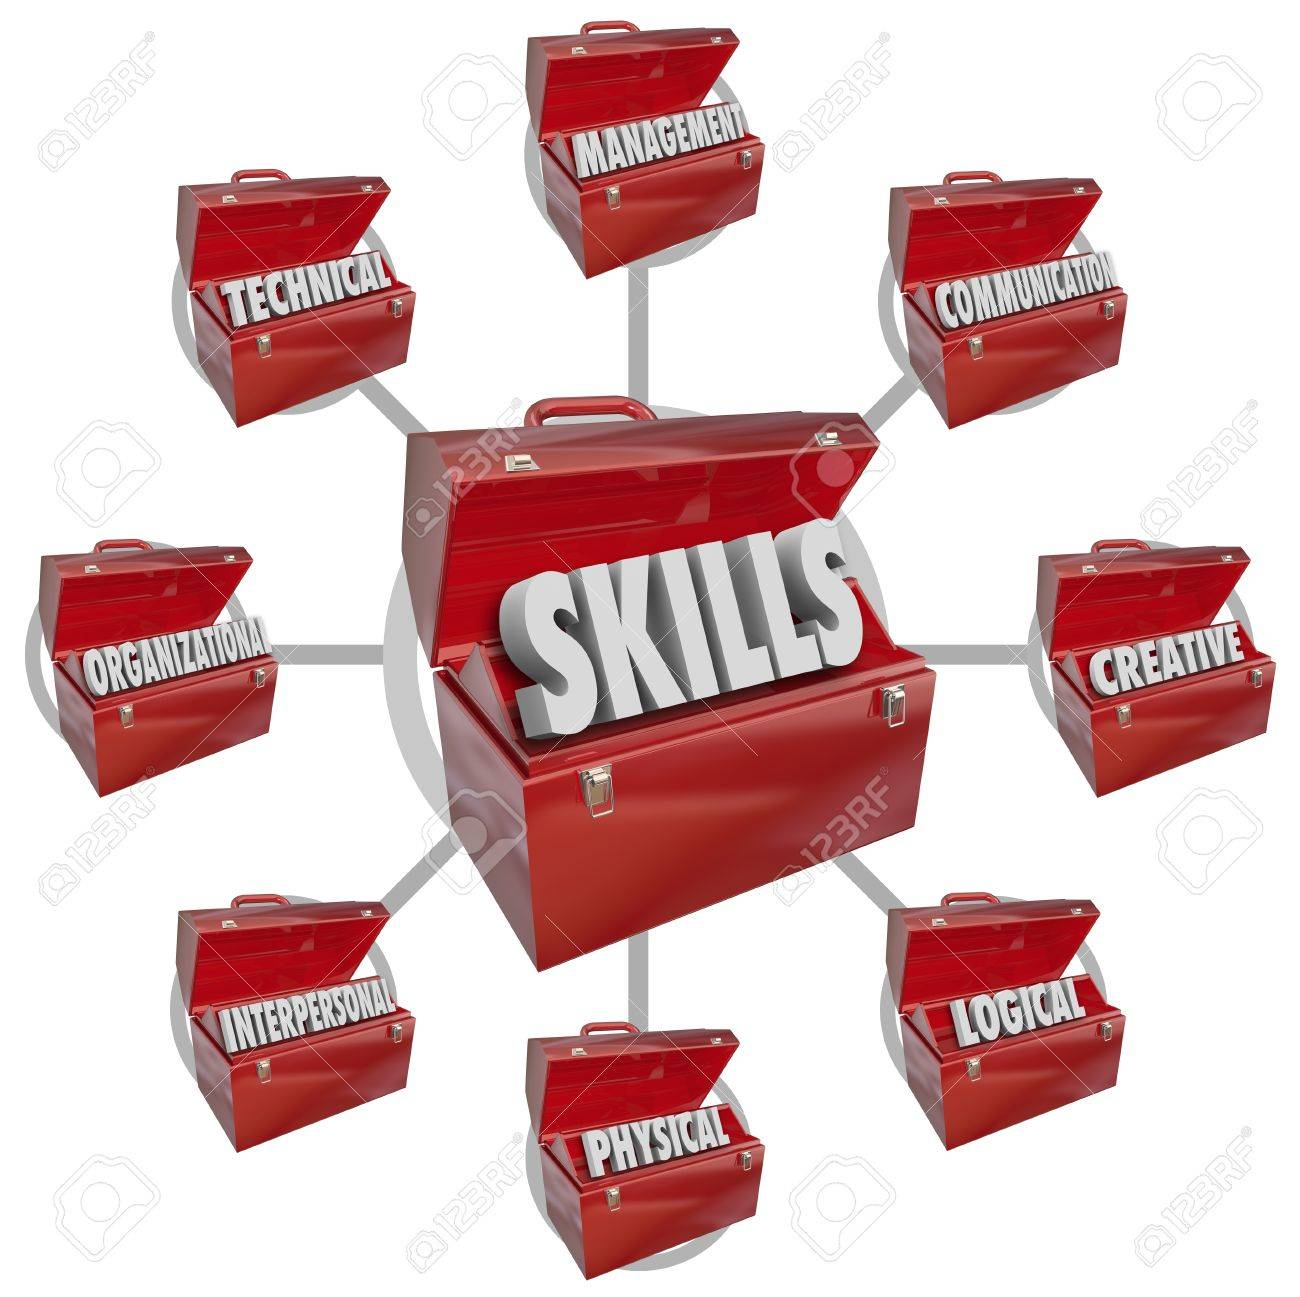 interpersonal skills images stock pictures royalty interpersonal skills the word skills on a red metal lunchbox stock photo